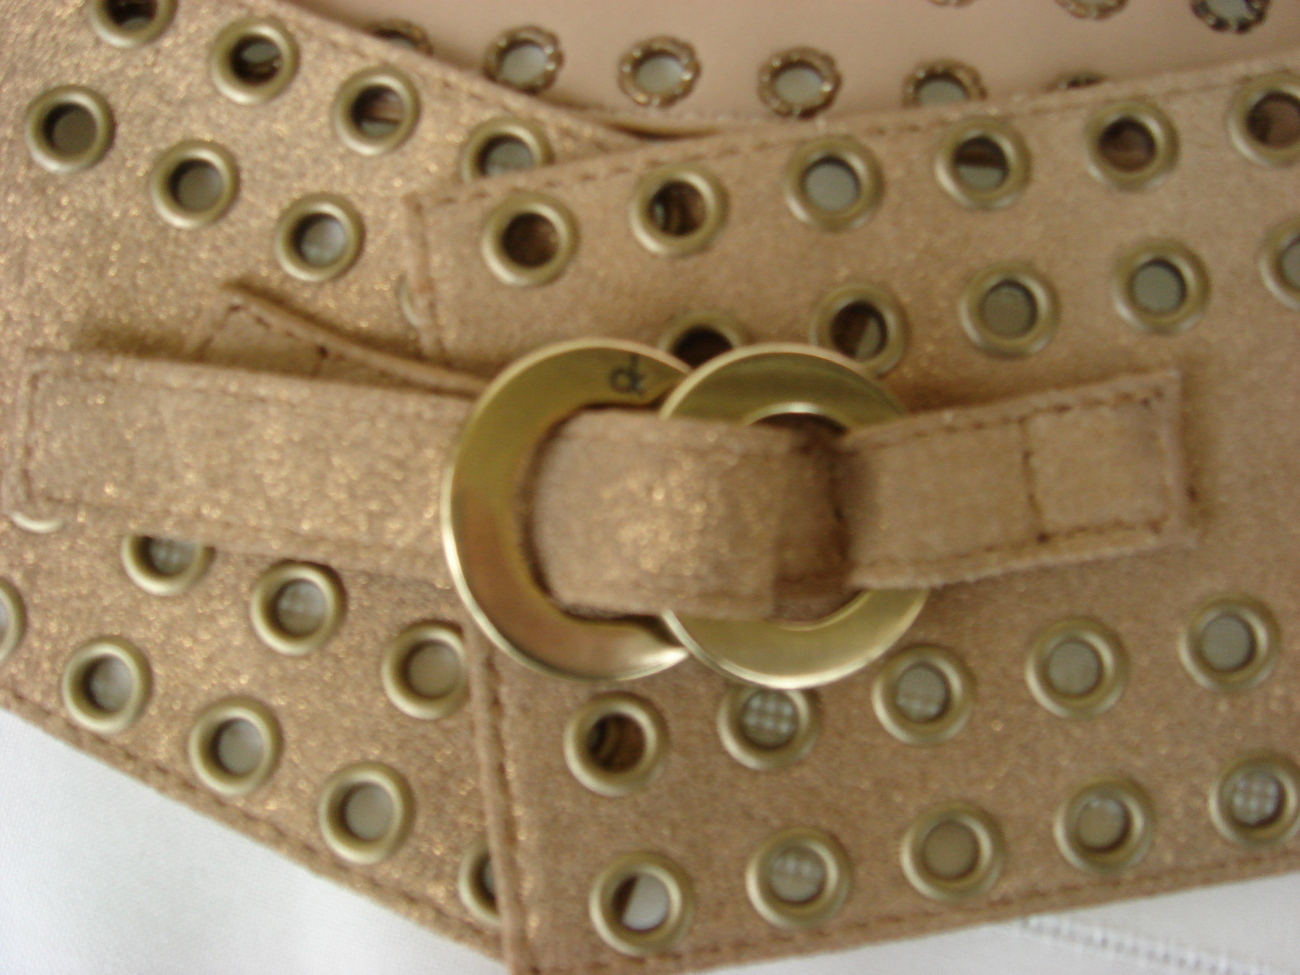 Calvin Klein Metallic Gold Leather Belt $170++ FREE SHIP